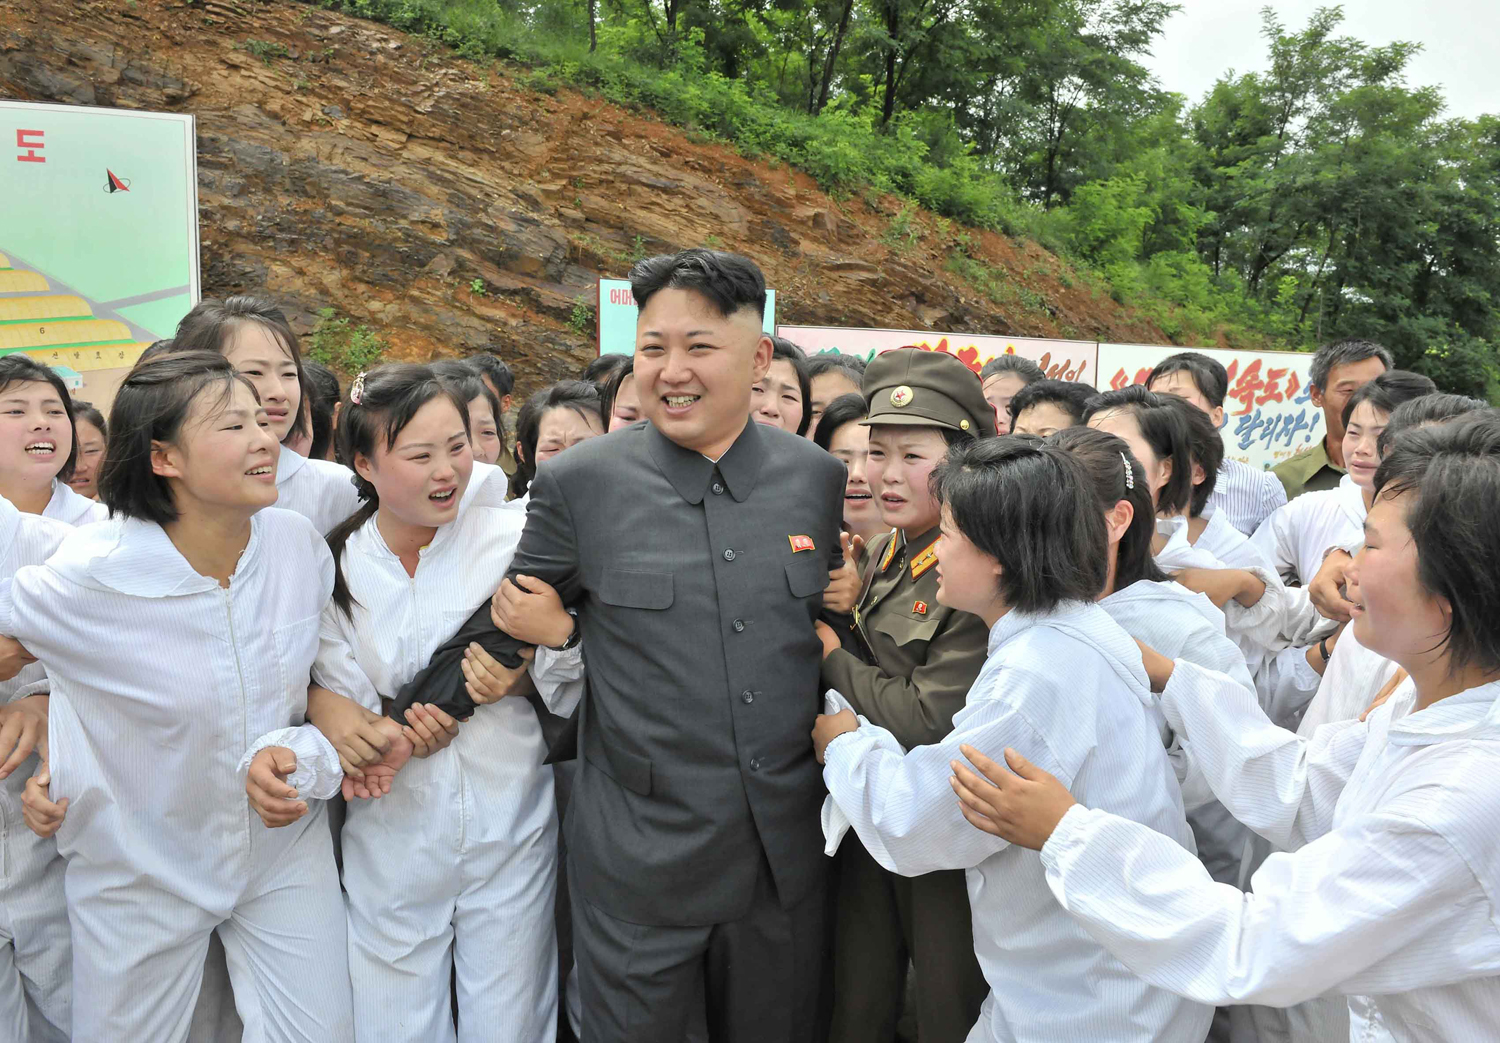 North Korean leader Kim Jong Un visits a mushroom farm in an undated photo released in July 2013 by North Korea's Korean Central News Agency (KCNA).